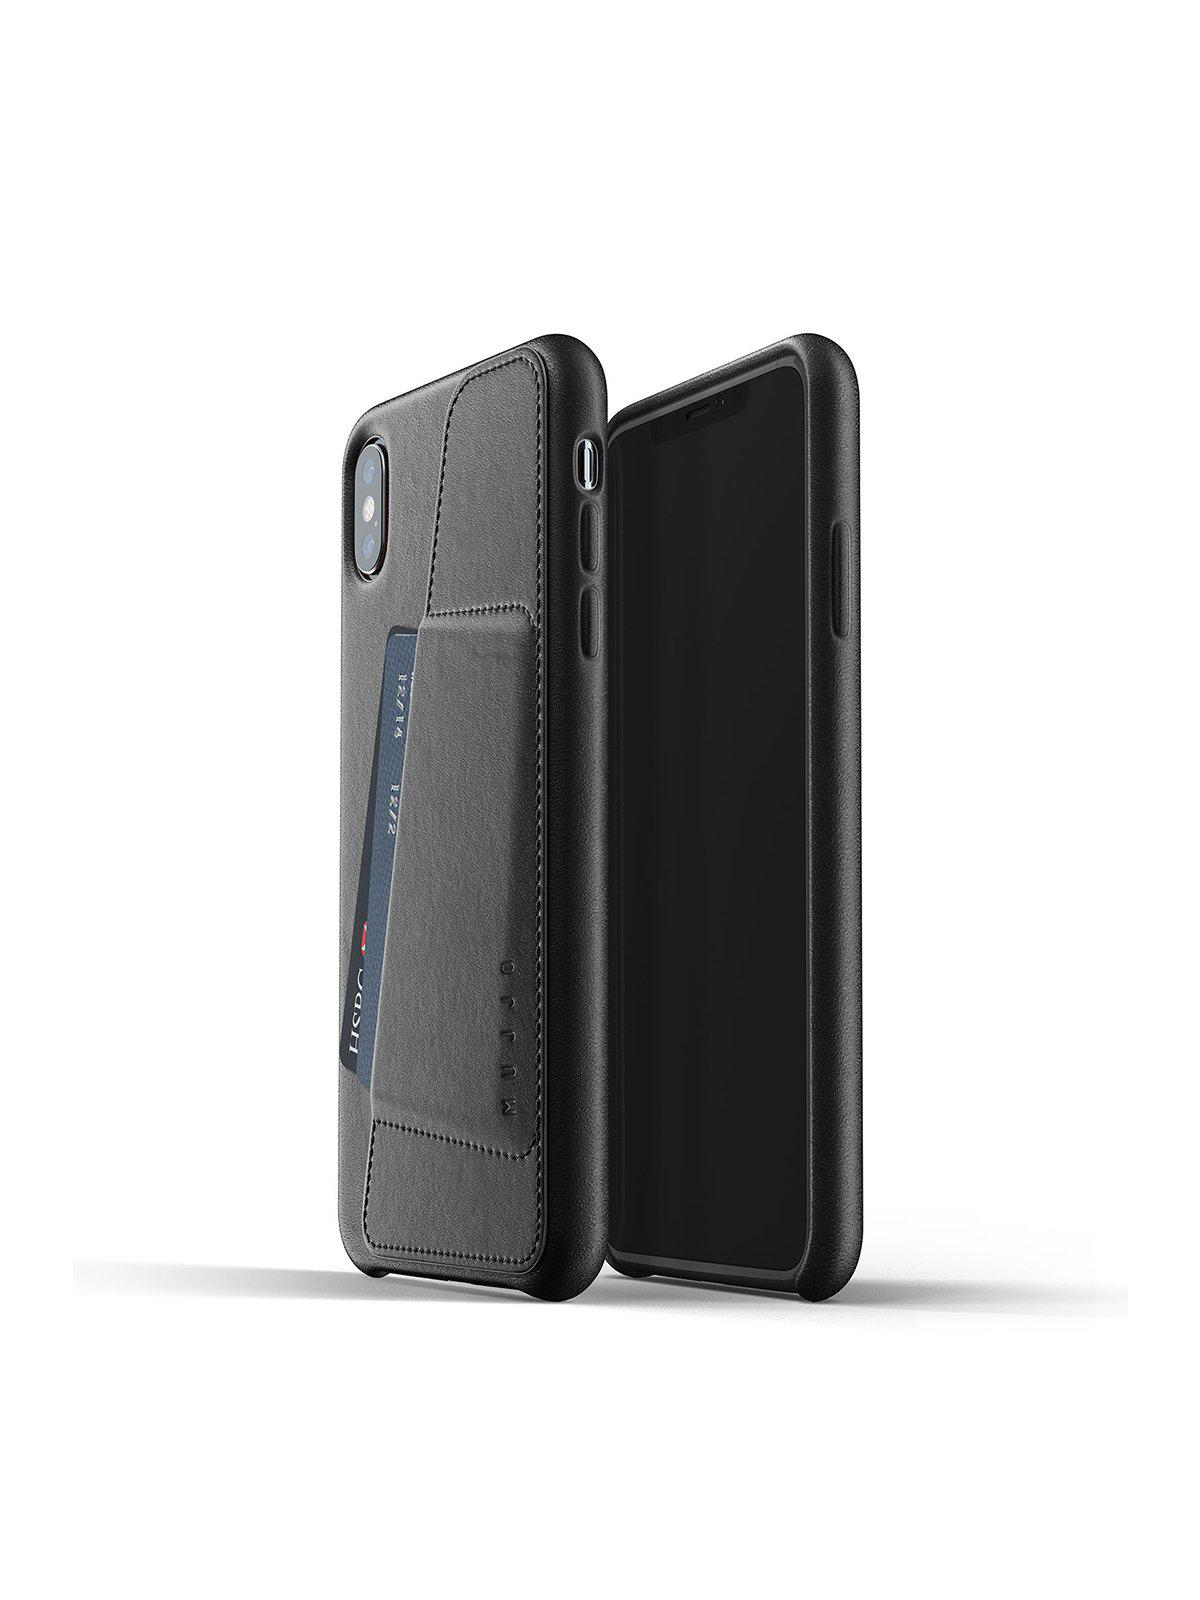 Mujjo Full Leather Wallet Case for iPhone XS Max Black - MORE by Morello Indonesia